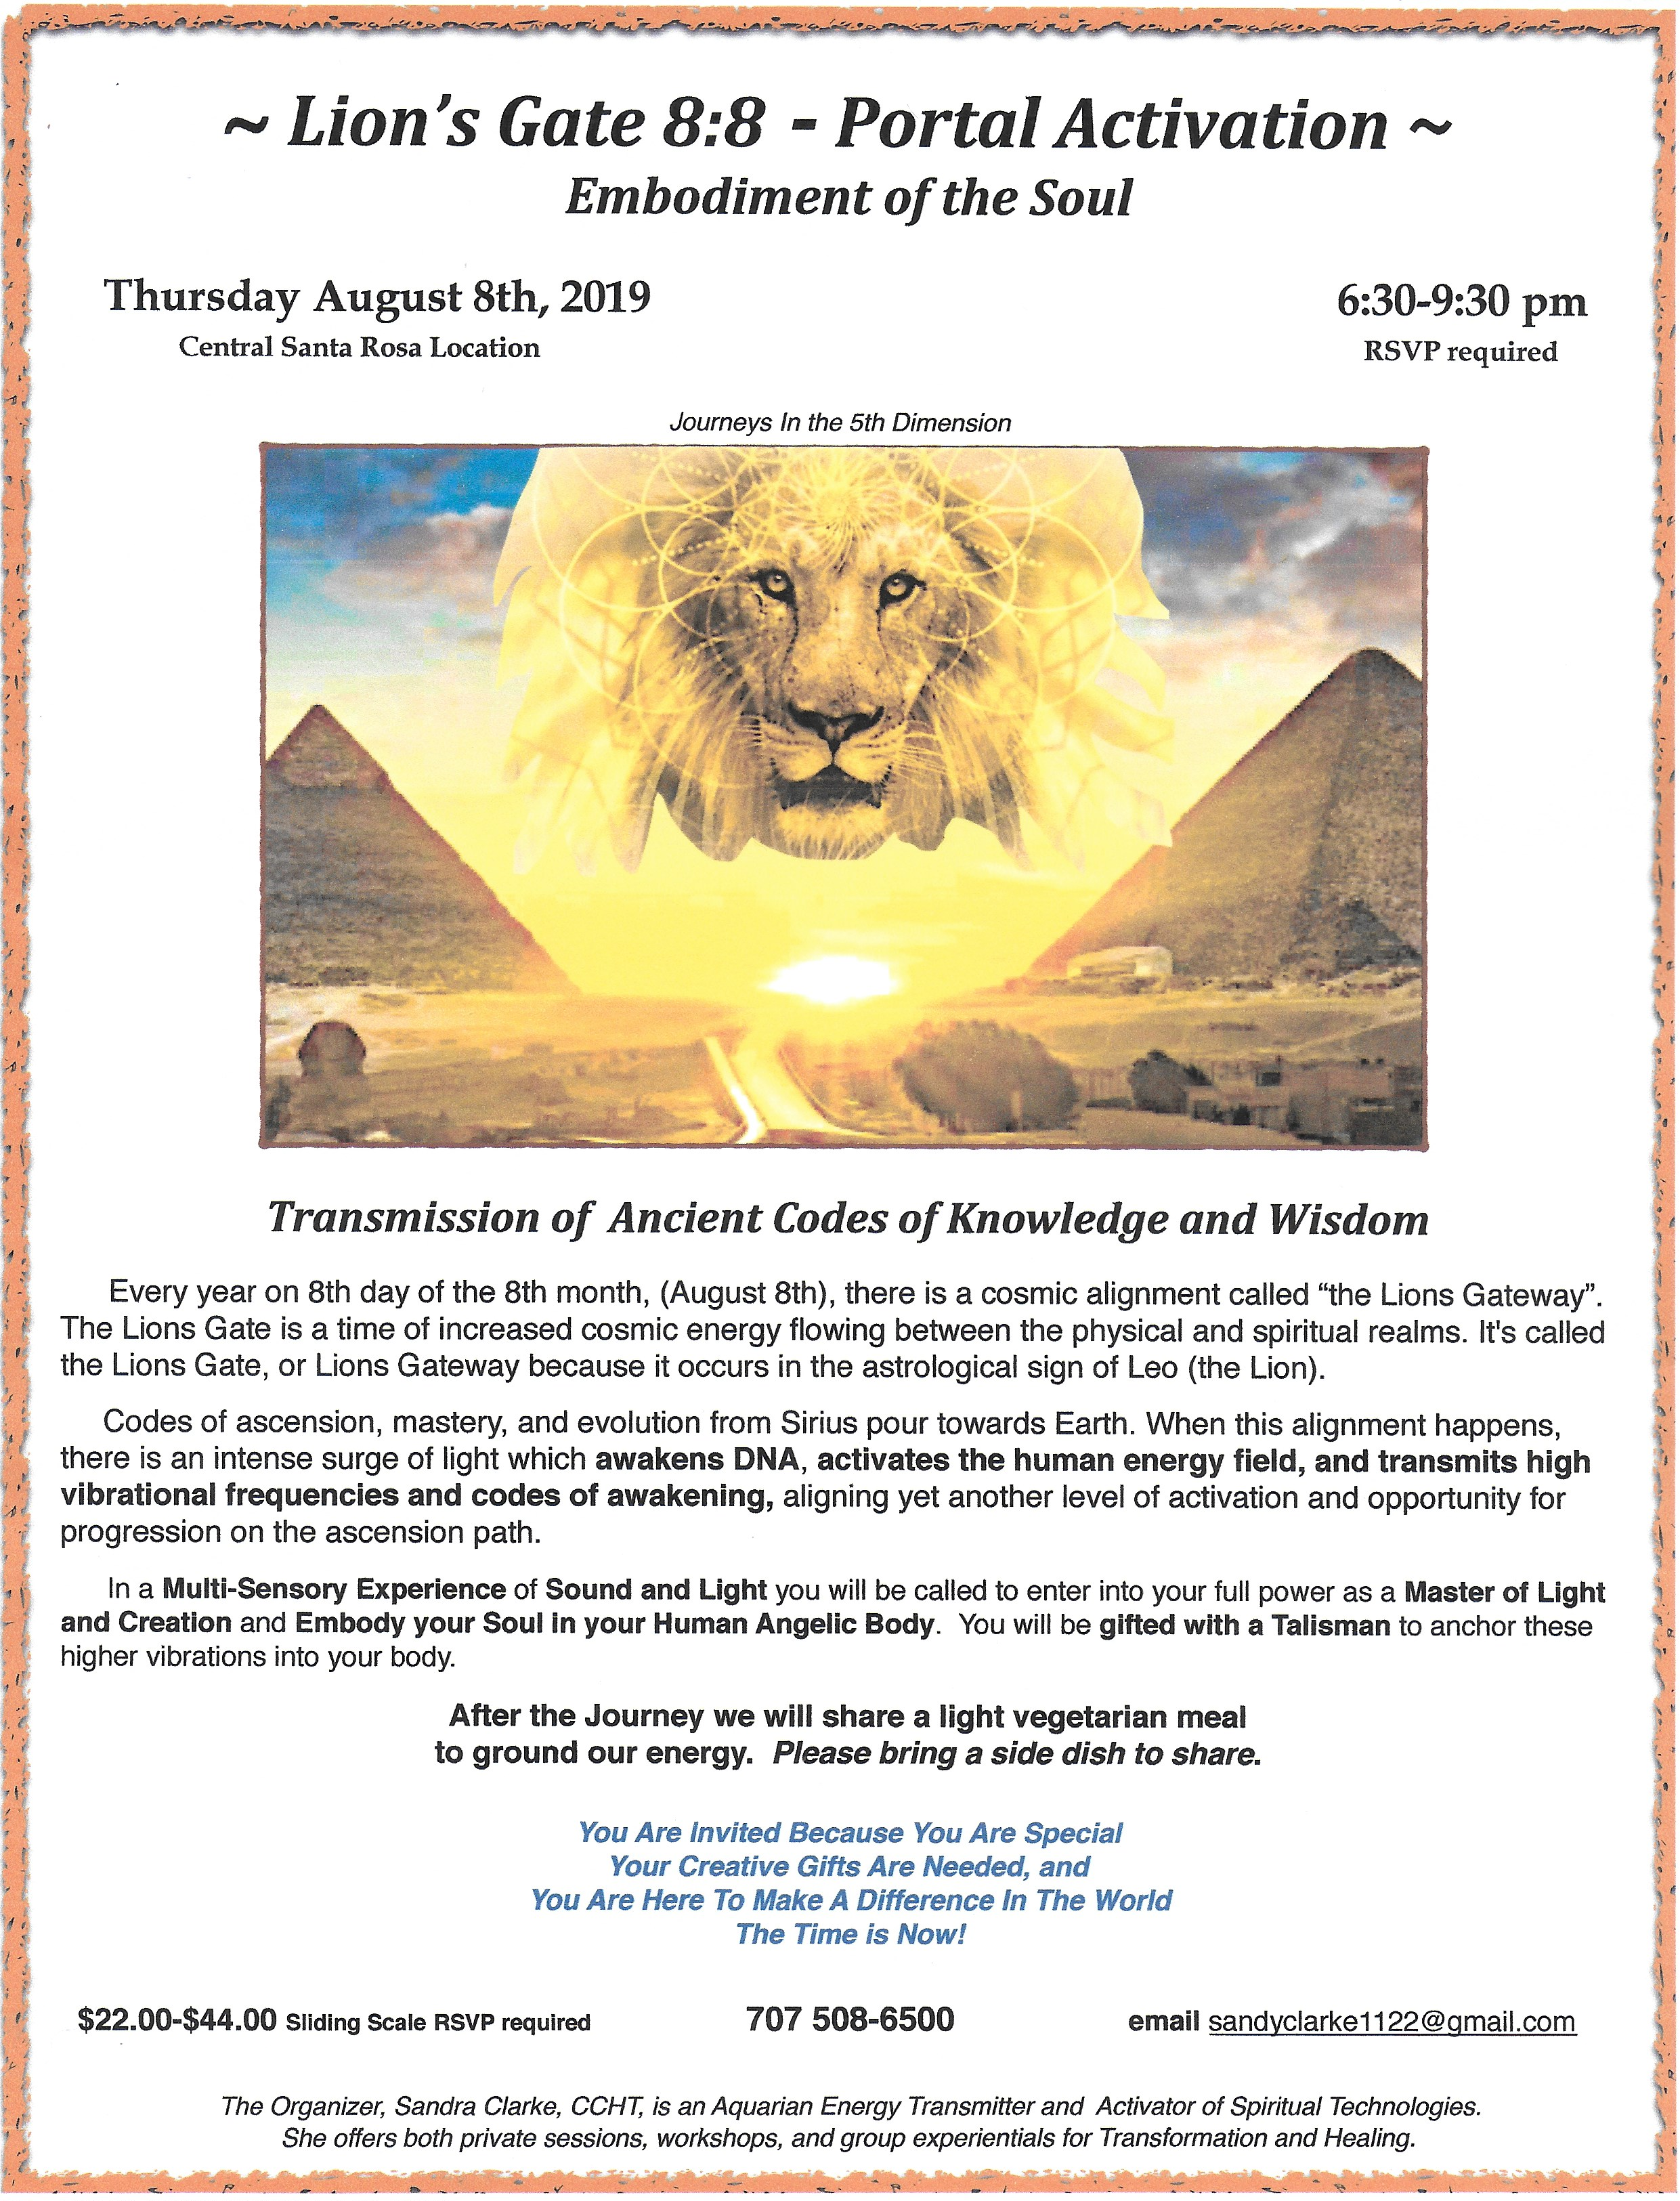 journeys In The 5th Dimension - Lions Gate 8:8 - Activation